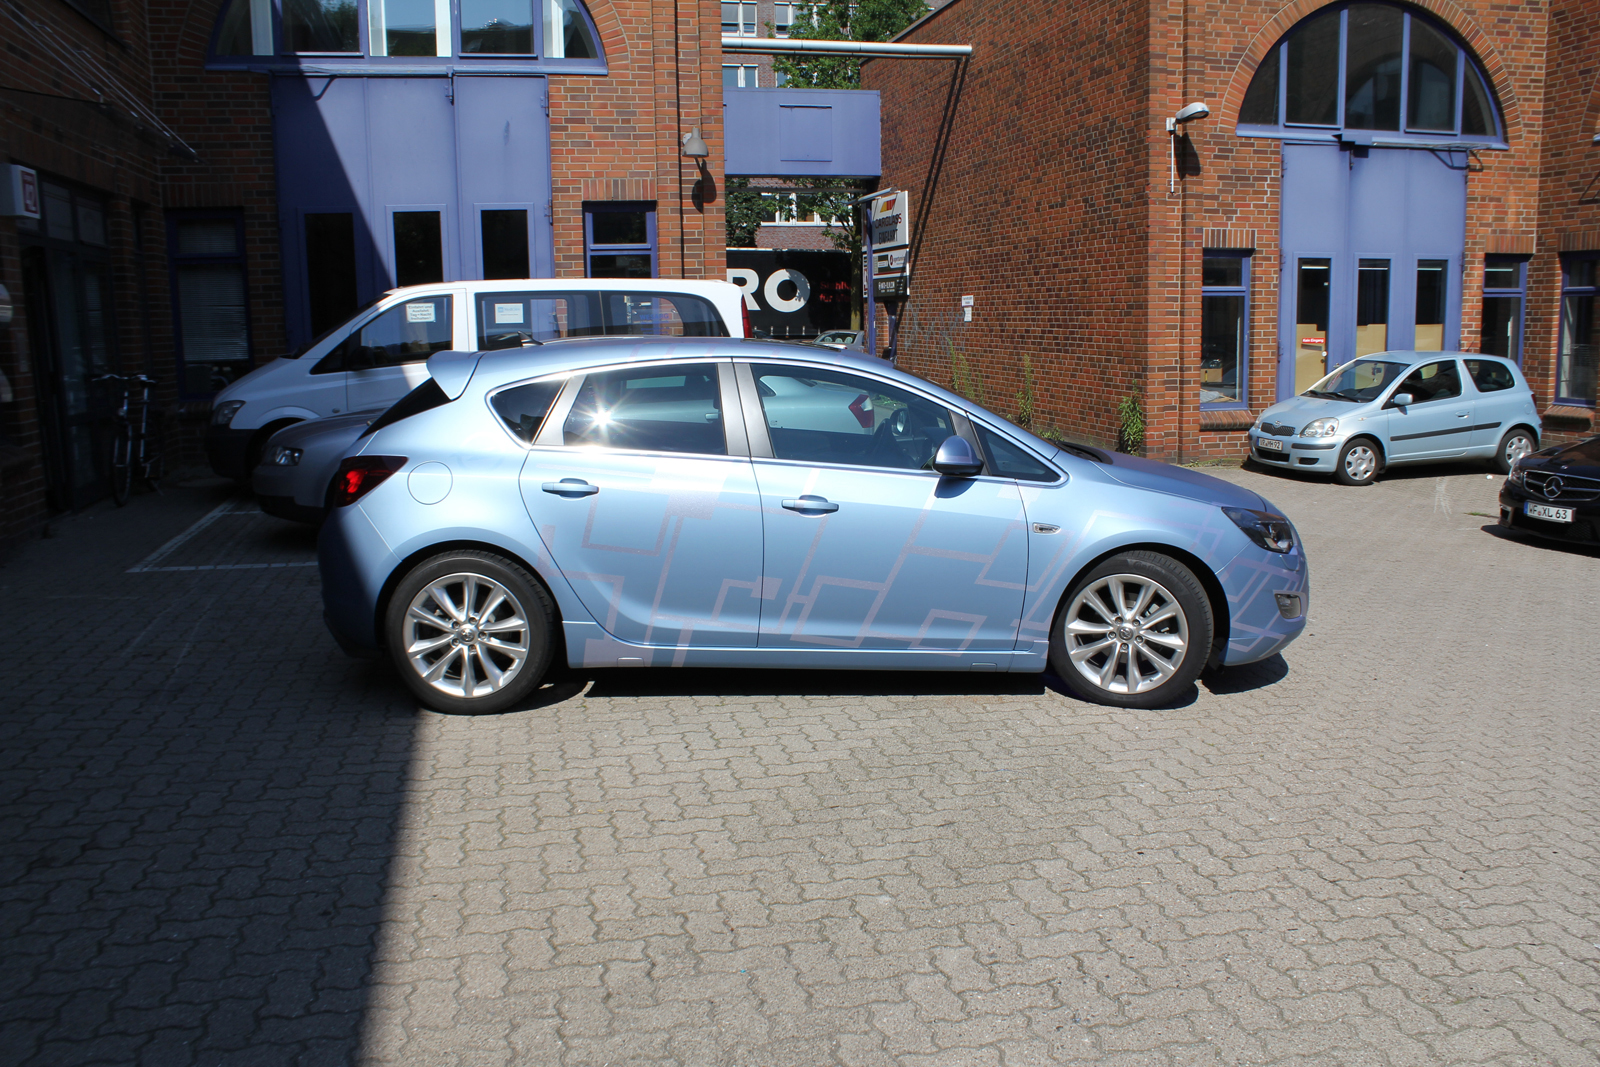 Car Wrapping Auto Folierung Opel Astra Frost Blue Matt Metallic